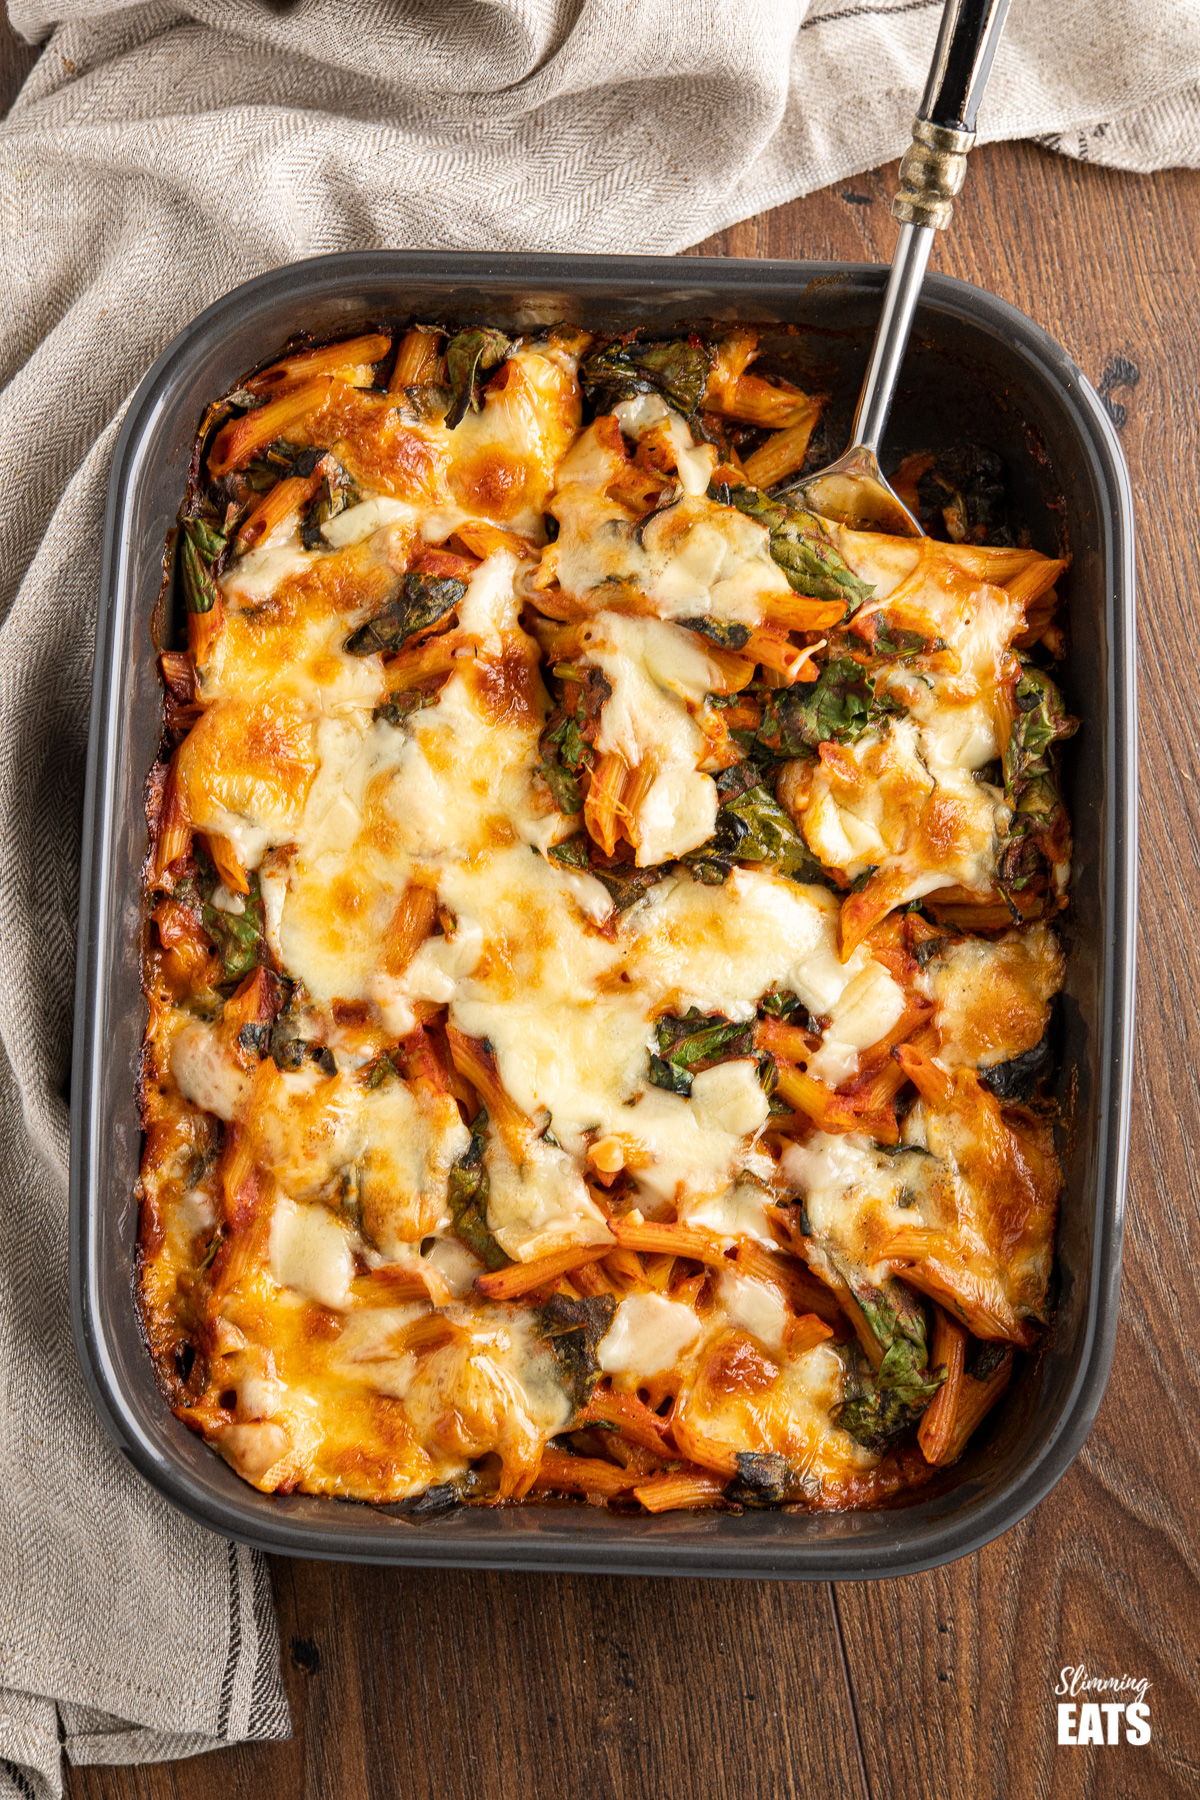 spinach pasta baked in grey oven dish on wooden board